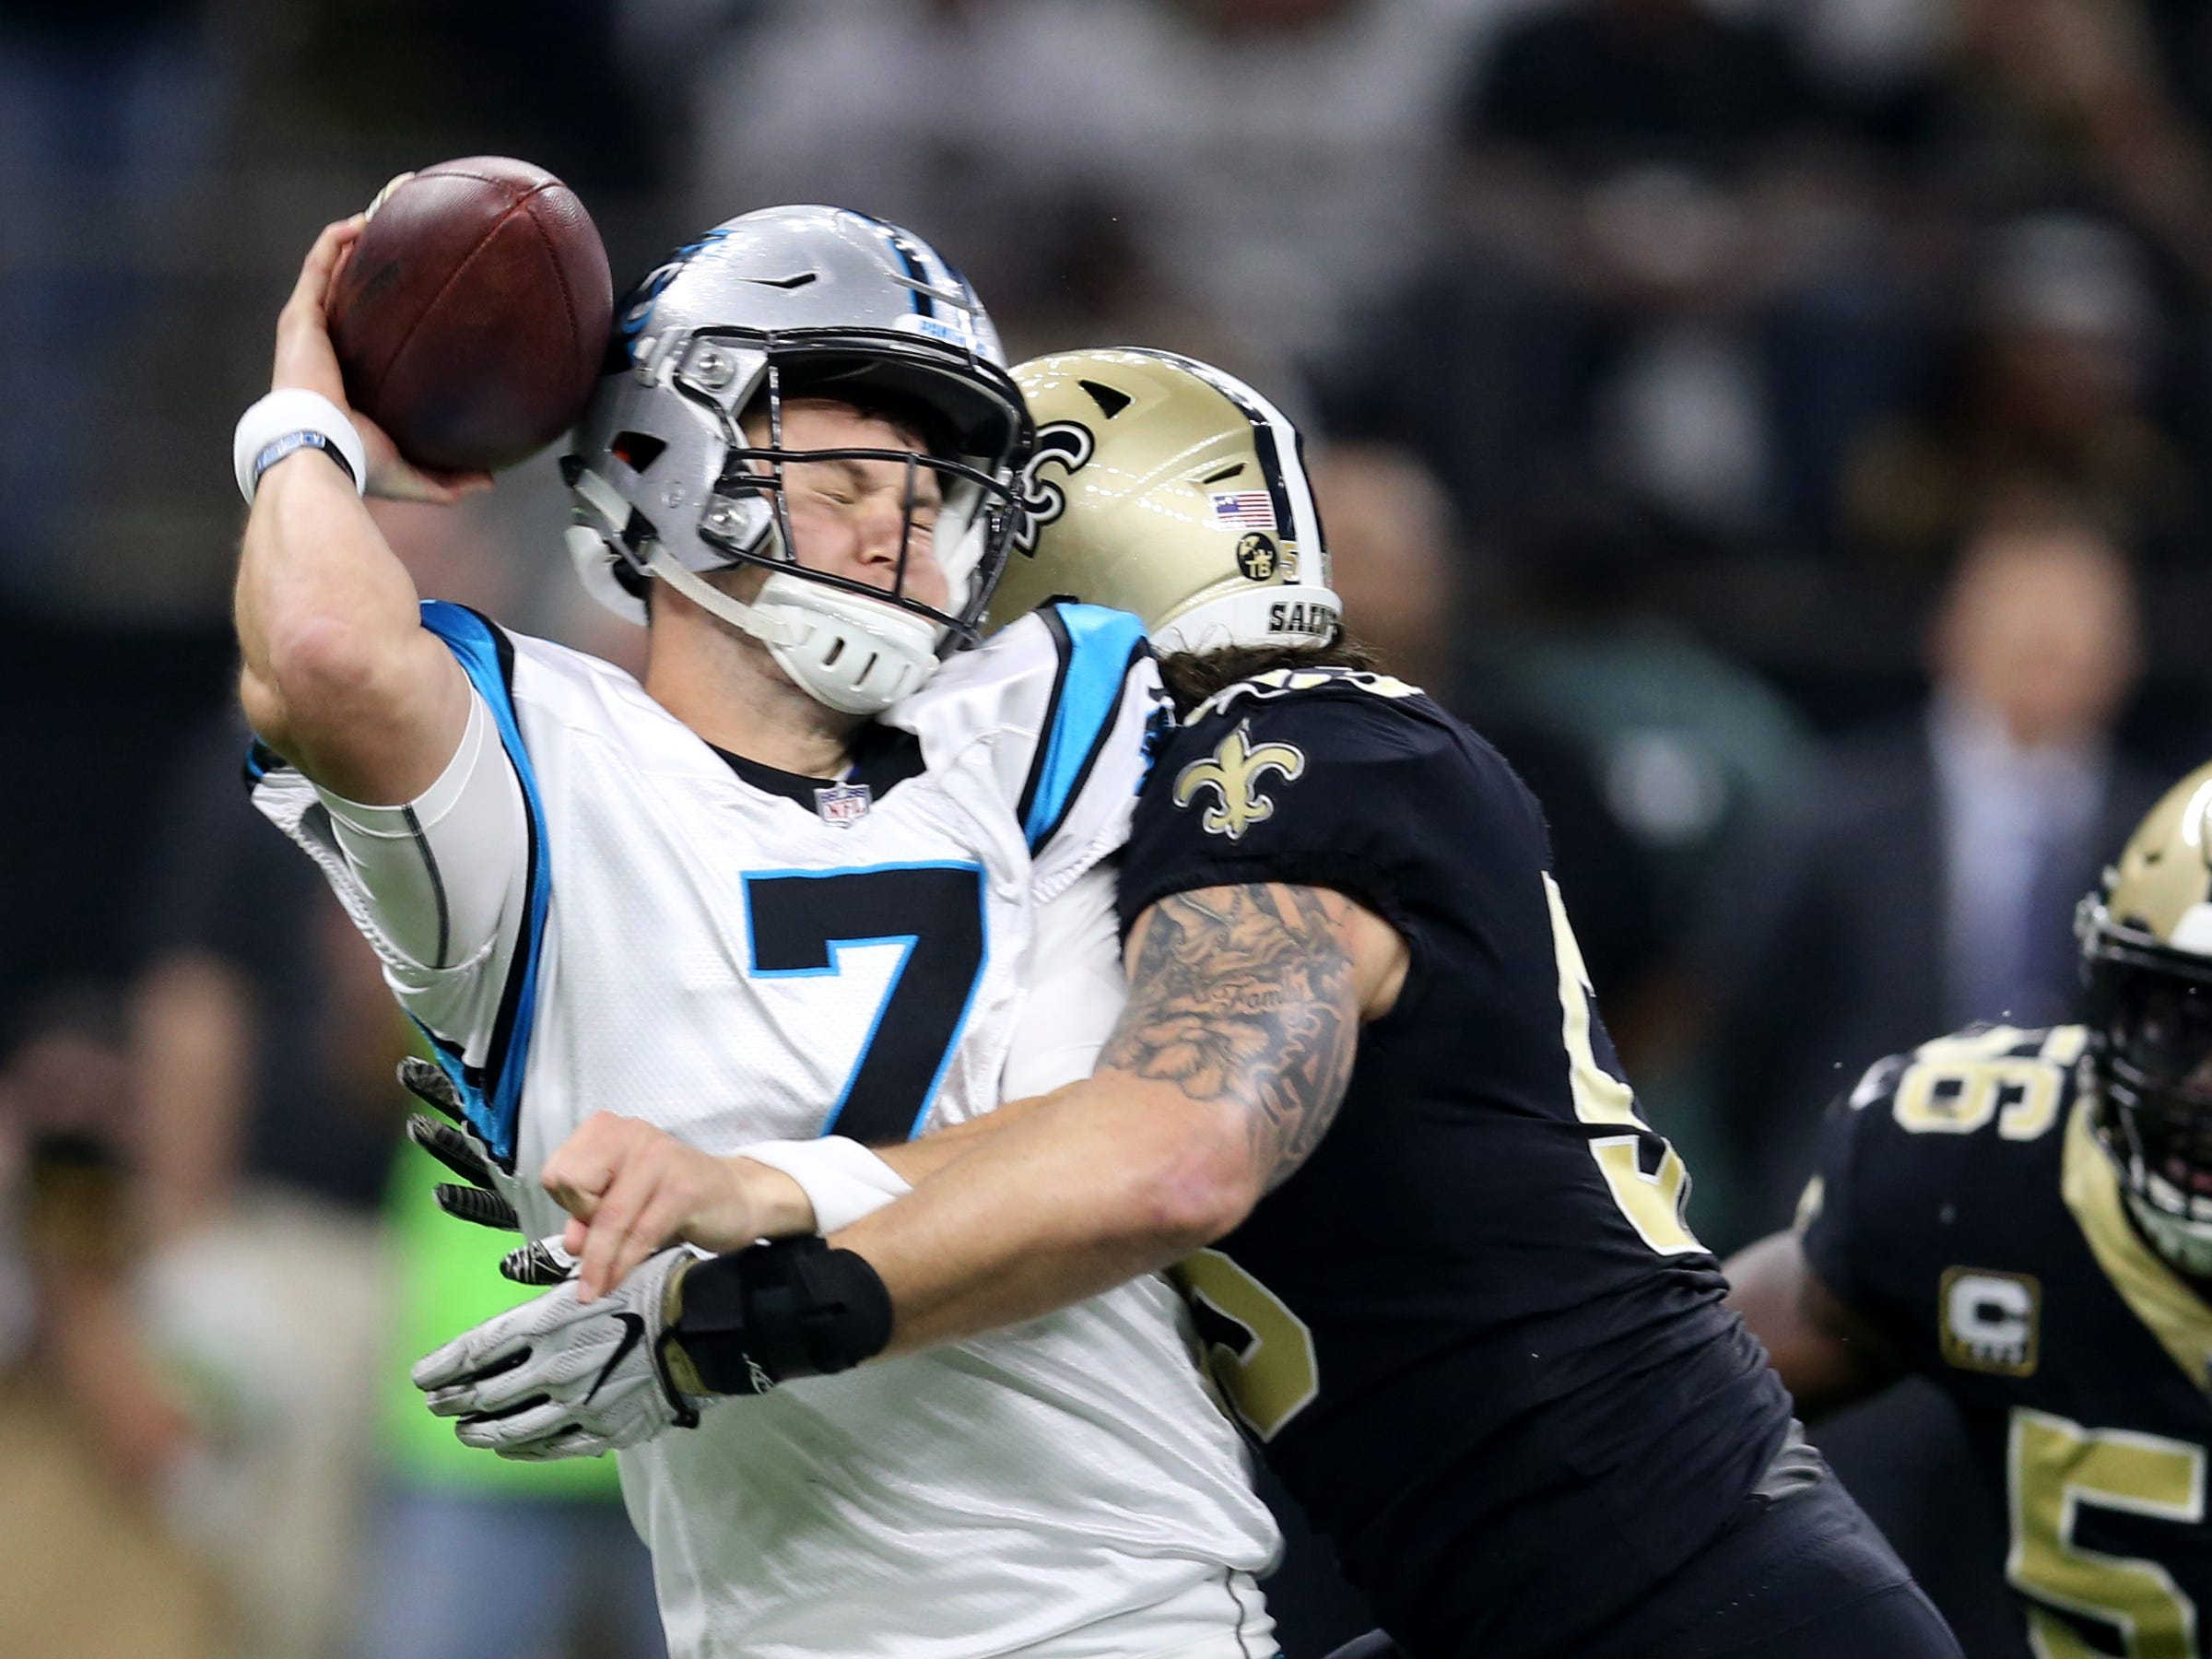 Week 17: Carolina Panthers quarterback Kyle Allen (7) is hit by New Orleans Saints outside linebacker A.J. Klein (53) in the first quarter at the Mercedes-Benz Superdome.